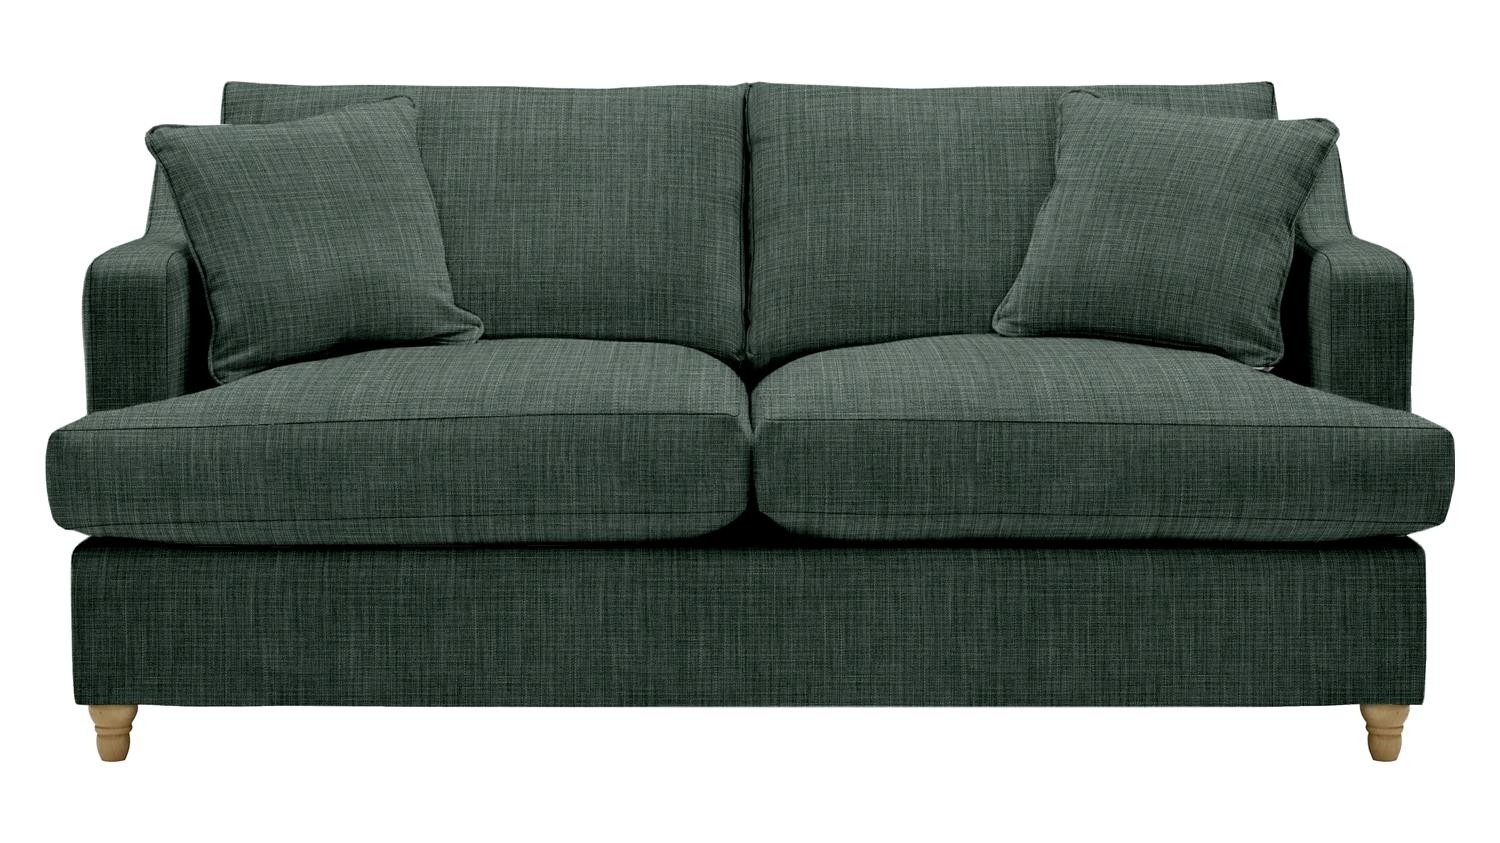 The Atworth 2 Seater Sofa Bed